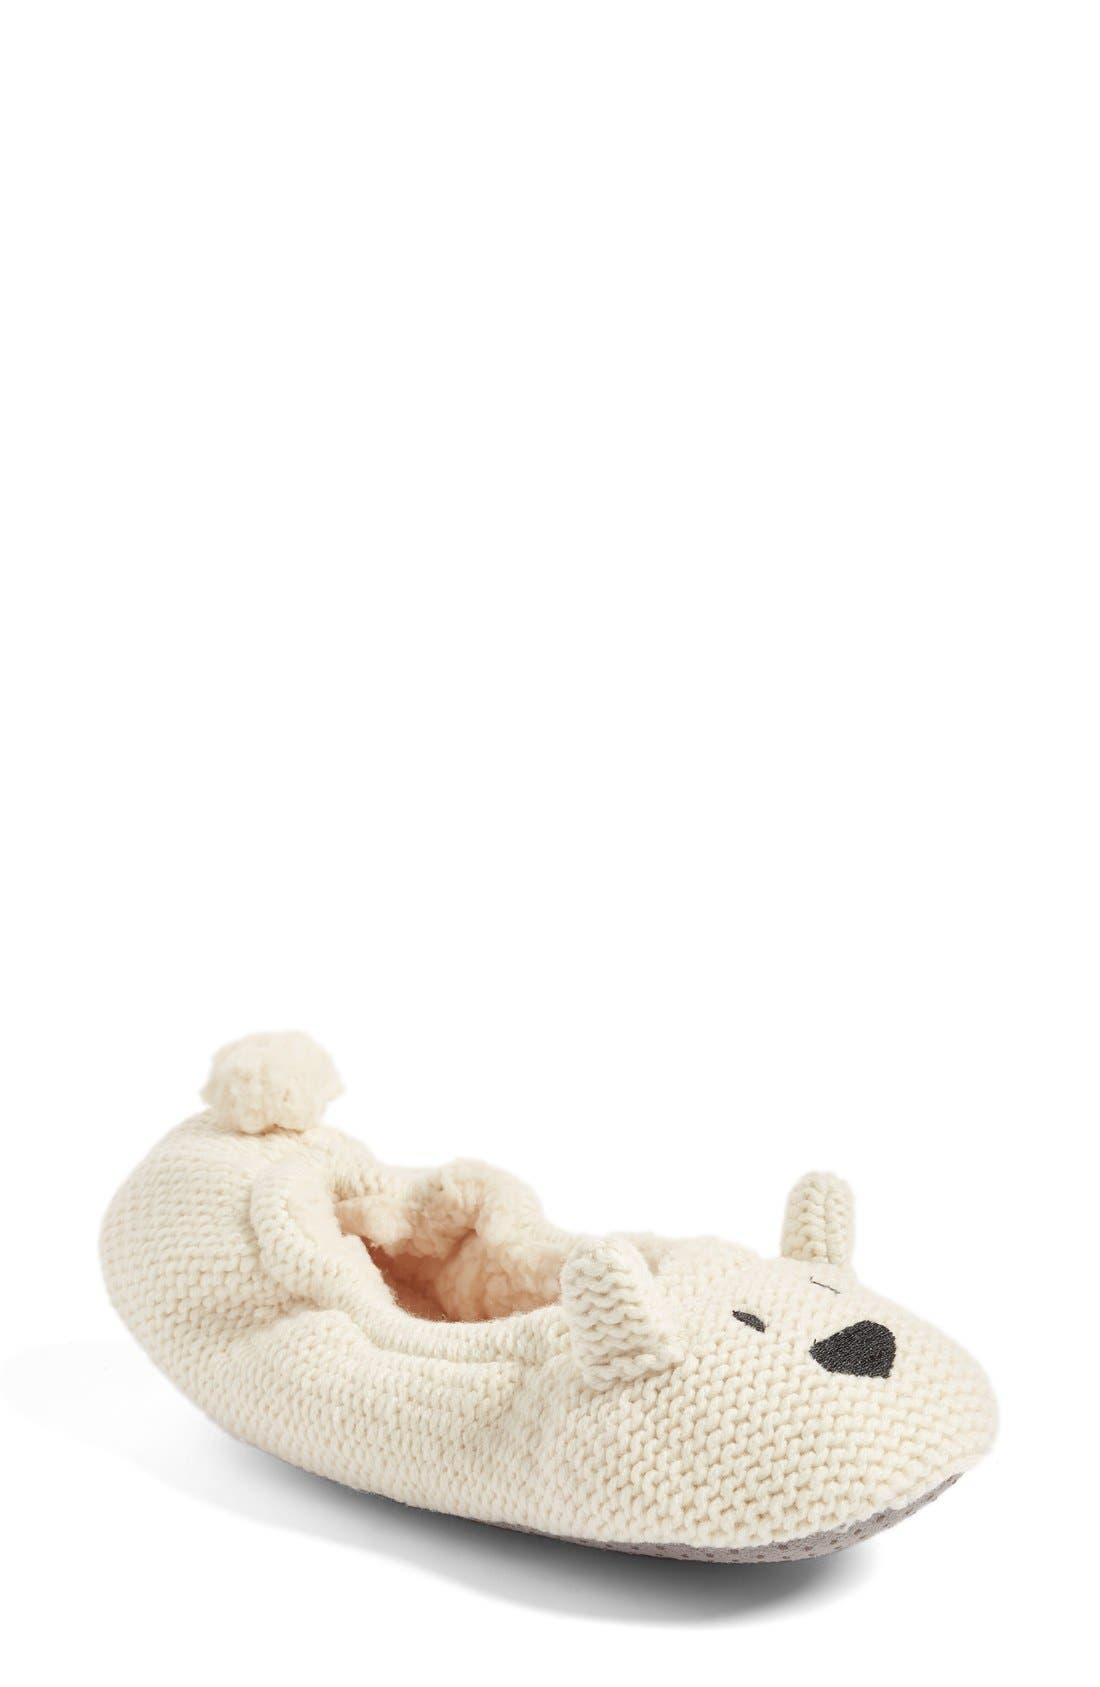 Main Image - Nordstrom 'Critter' Slipper (Women)